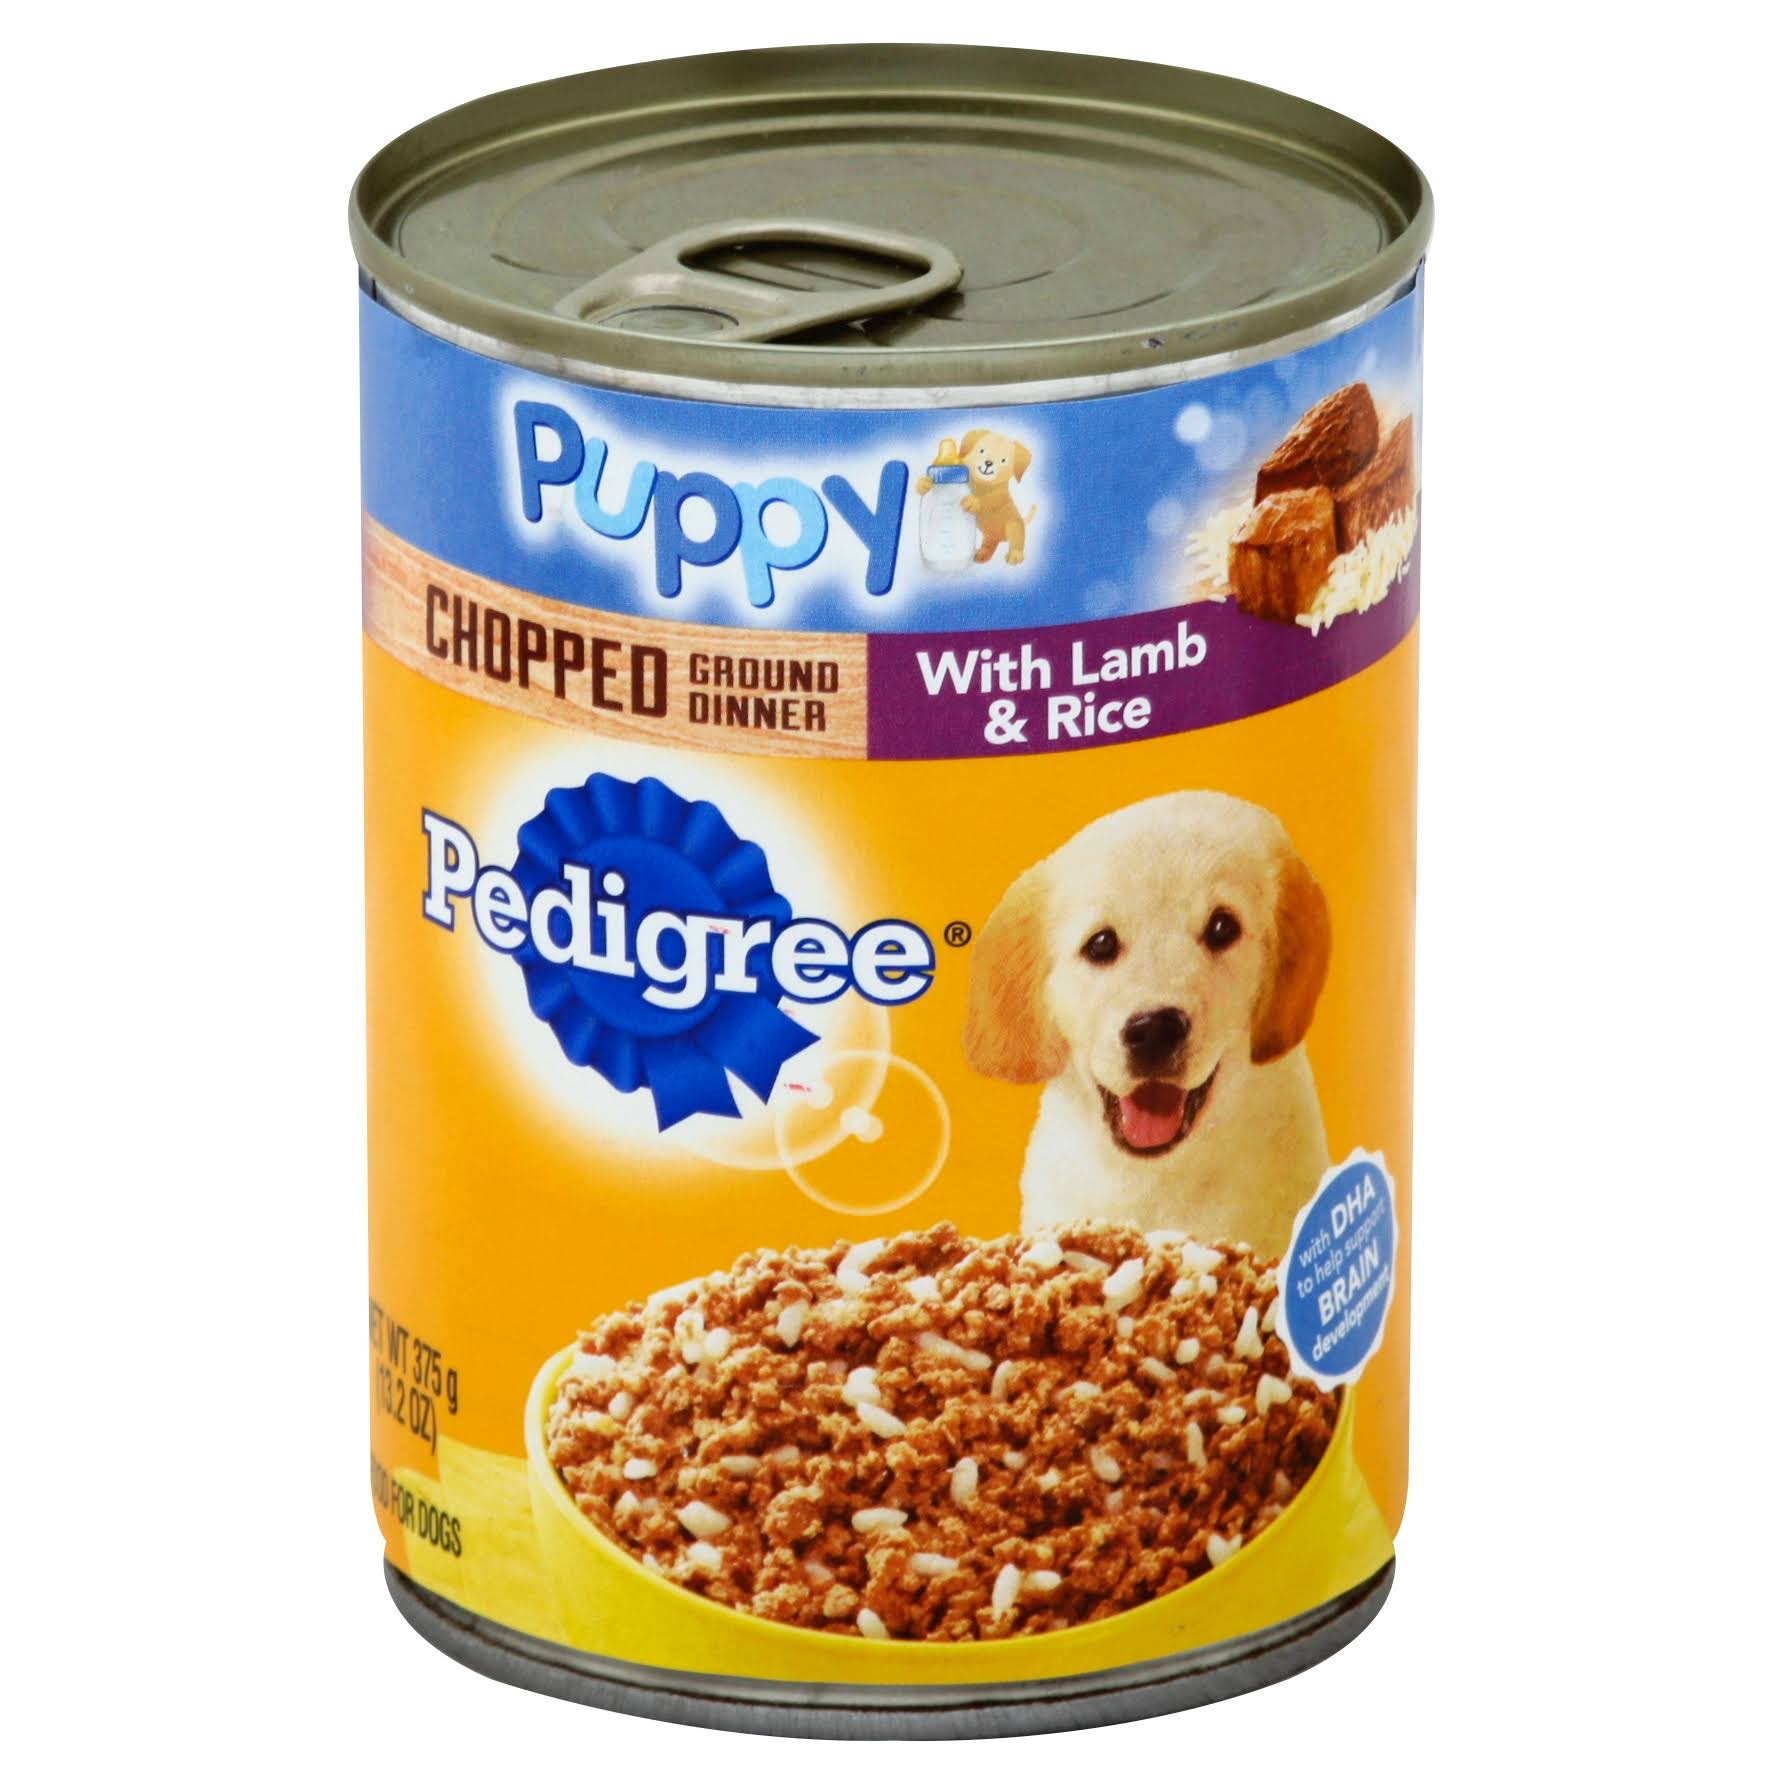 Pedigree Meaty Ground Dinner Puppy Complete Canned Dog Food - Lamb & Rice, 374g